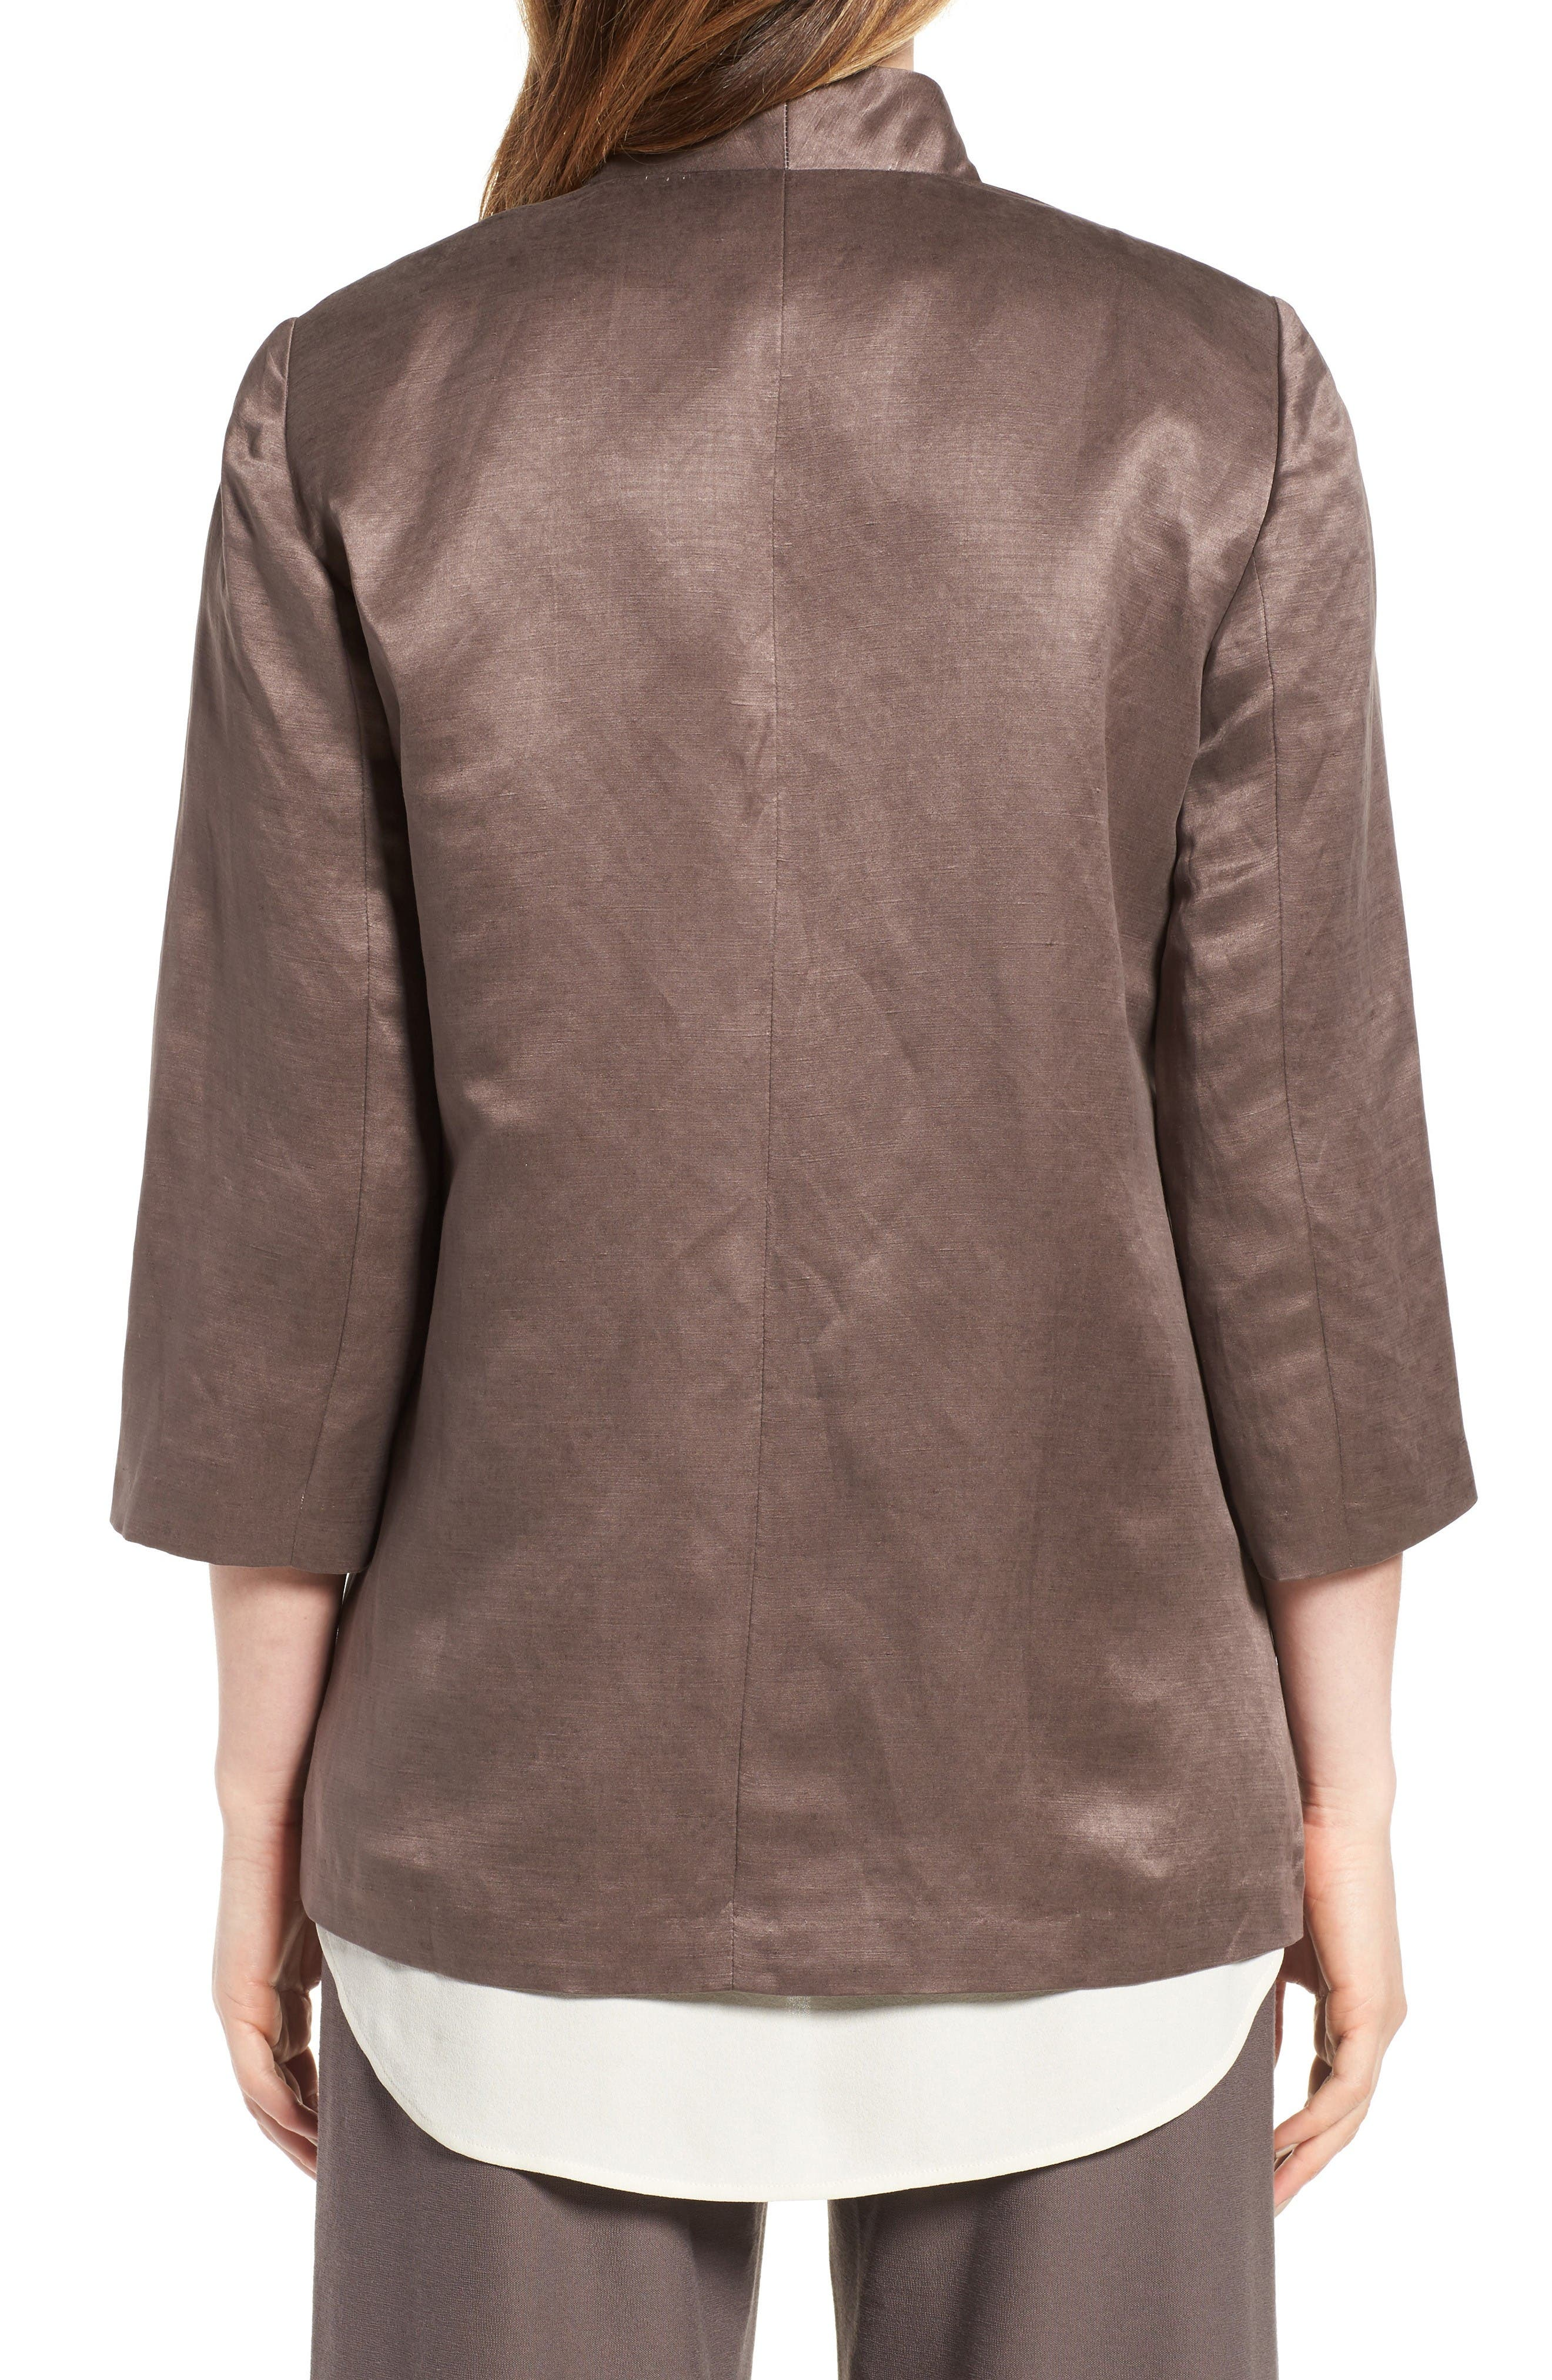 Alternate Image 2  - Eileen Fisher Organic Linen & Silk Jacket (Regular & Petite)